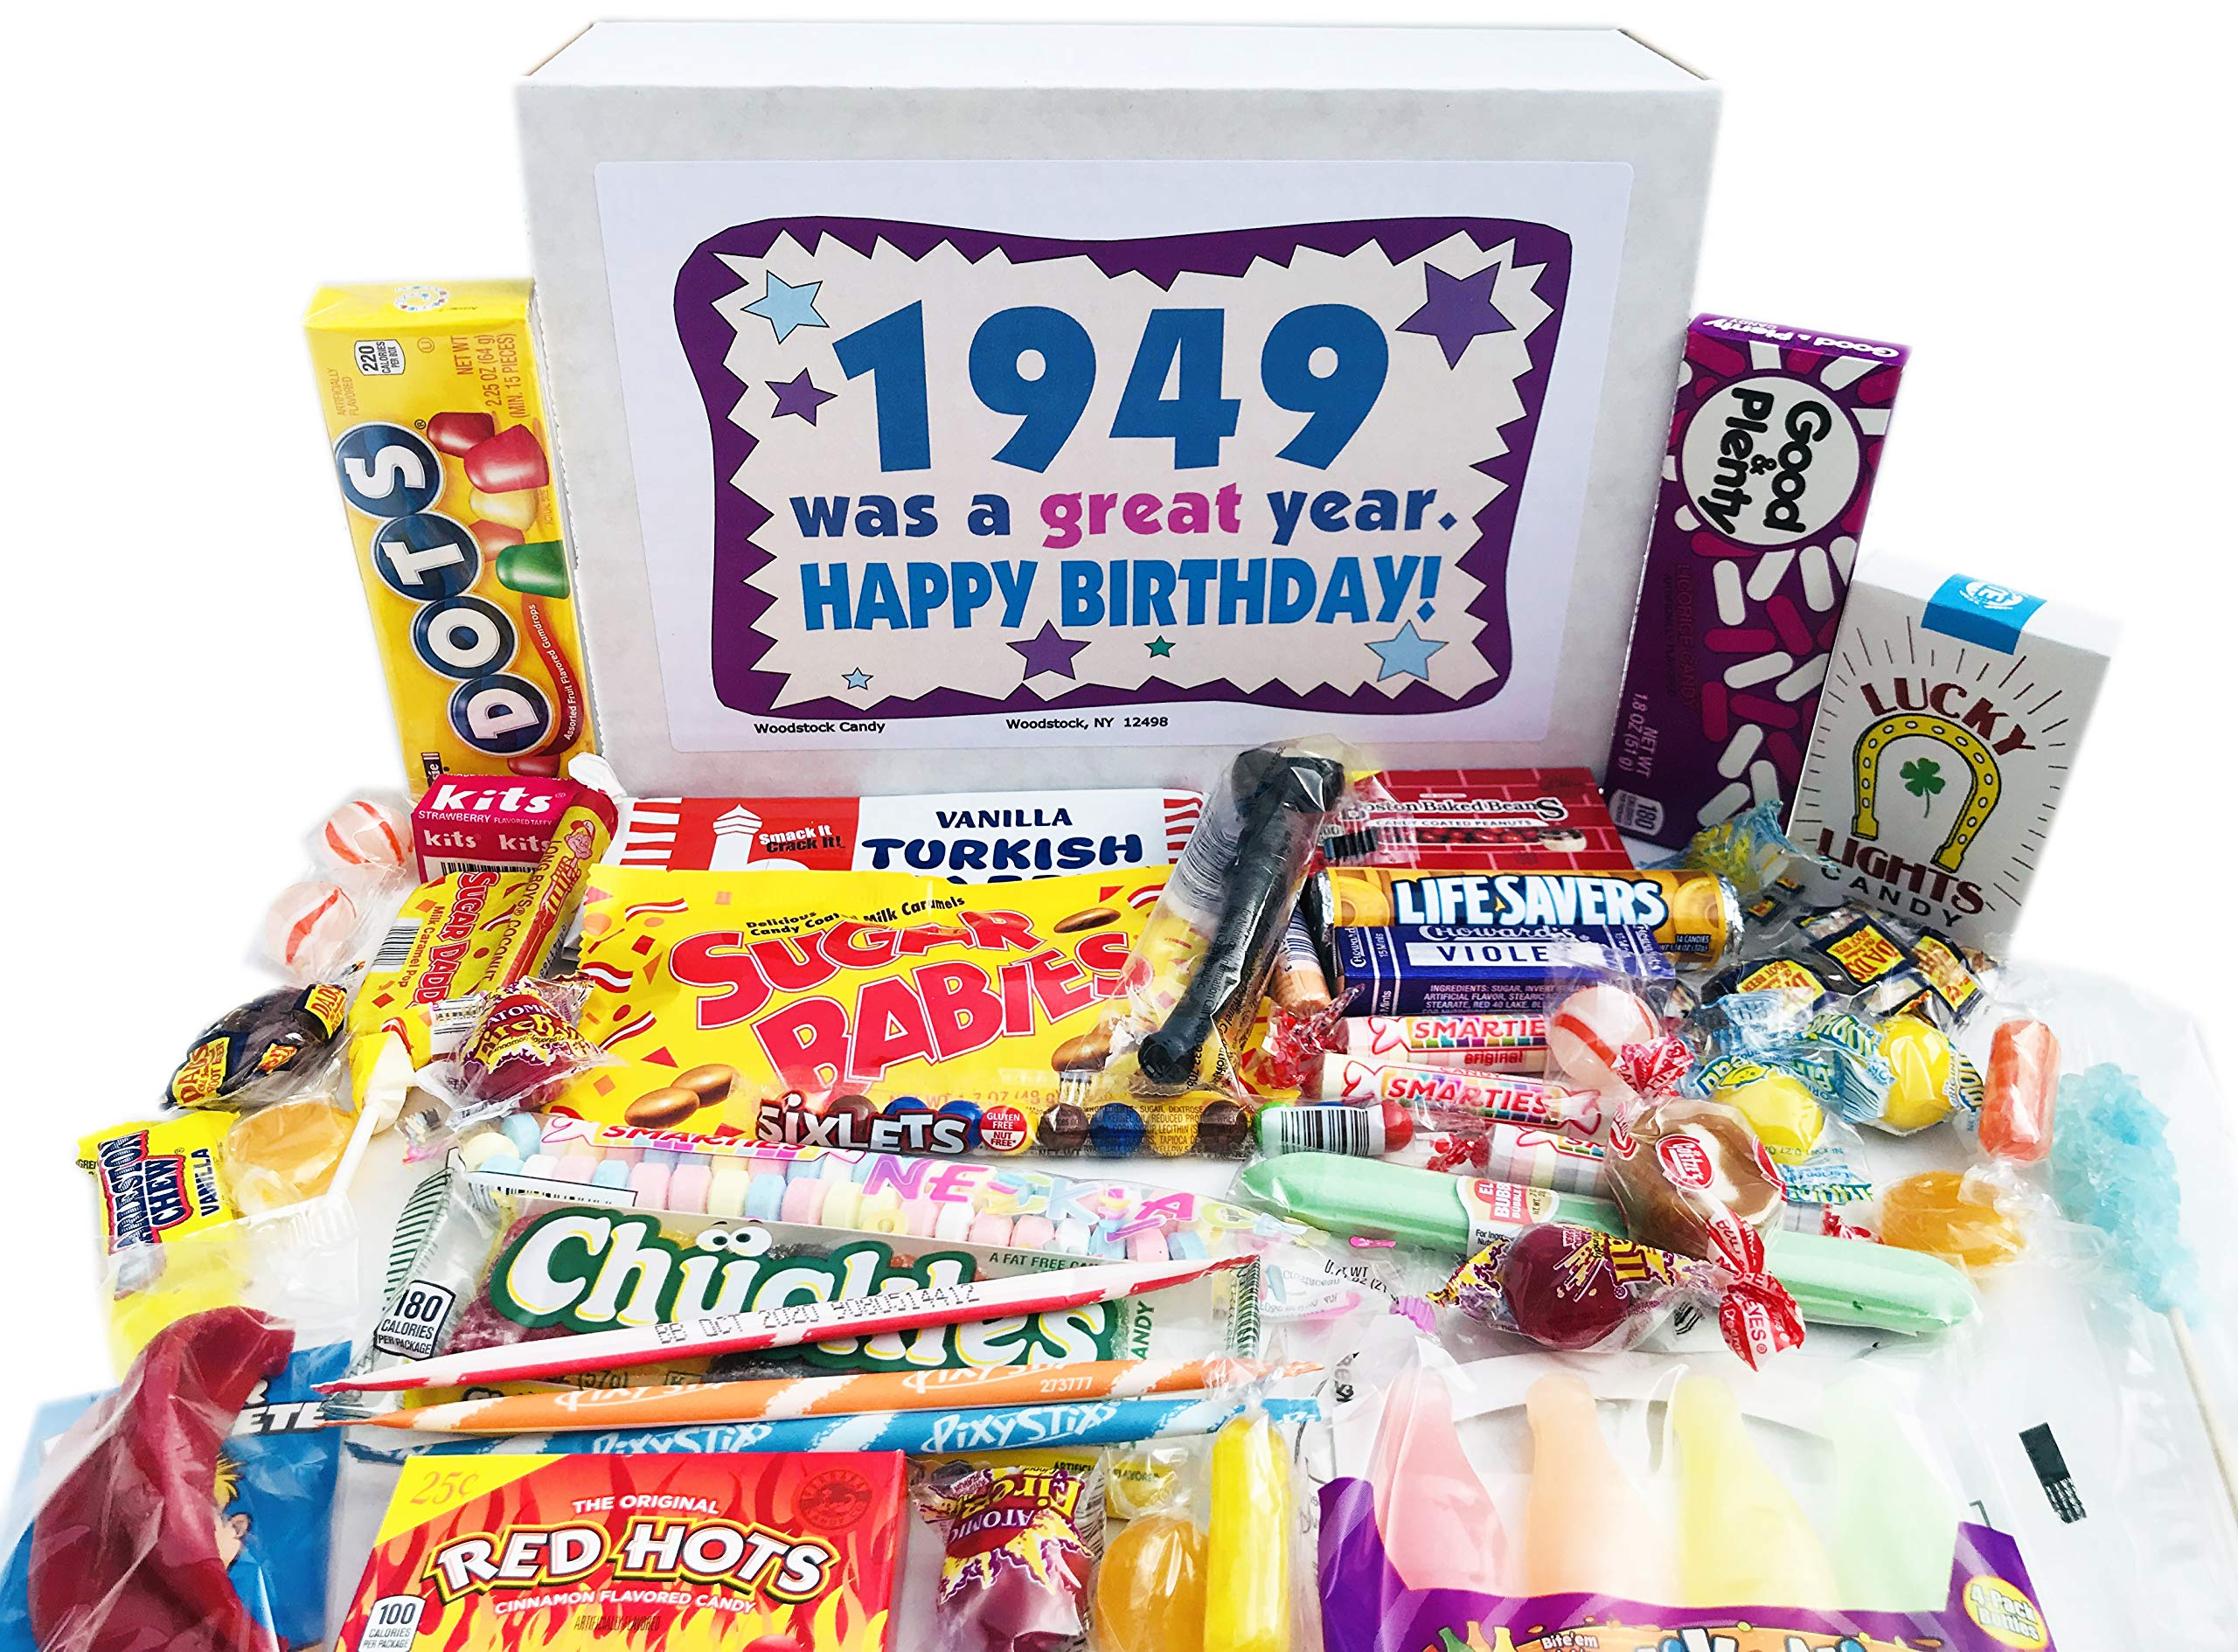 Woodstock Candy ~ 70th Birthday Gift Box of Retro Vintage Candy Assortment from Childhood for 70 Year Old Men and Women Born 1949 - Great Idea for Mom or Dad - Jr by Woodstock Candy (Image #1)